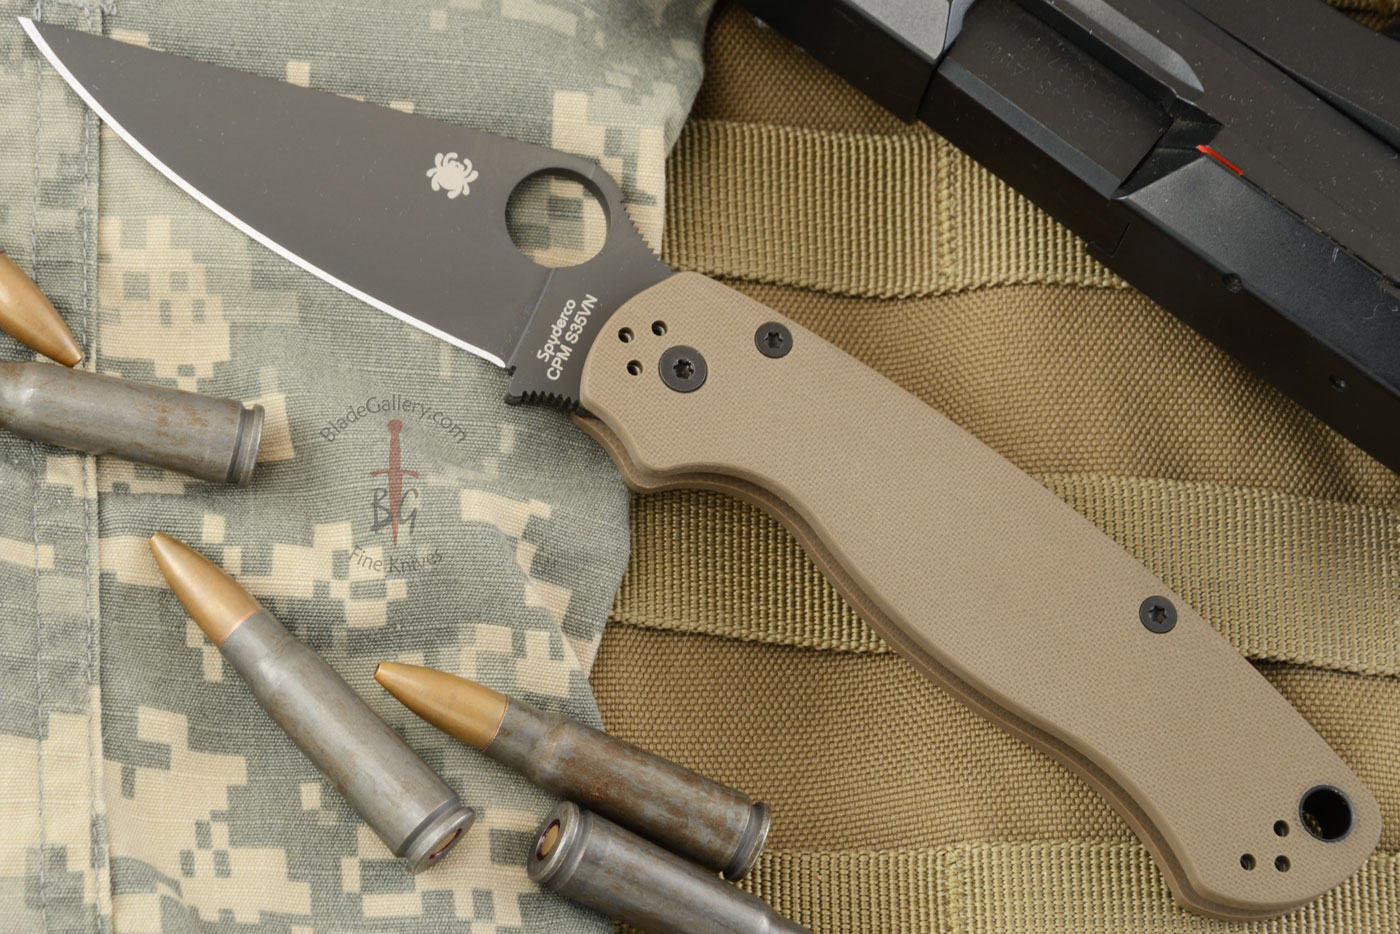 Paramilitary 2 with S35VN and Earth Brown G-10 (Sprint Run) - C81GPBNBK2